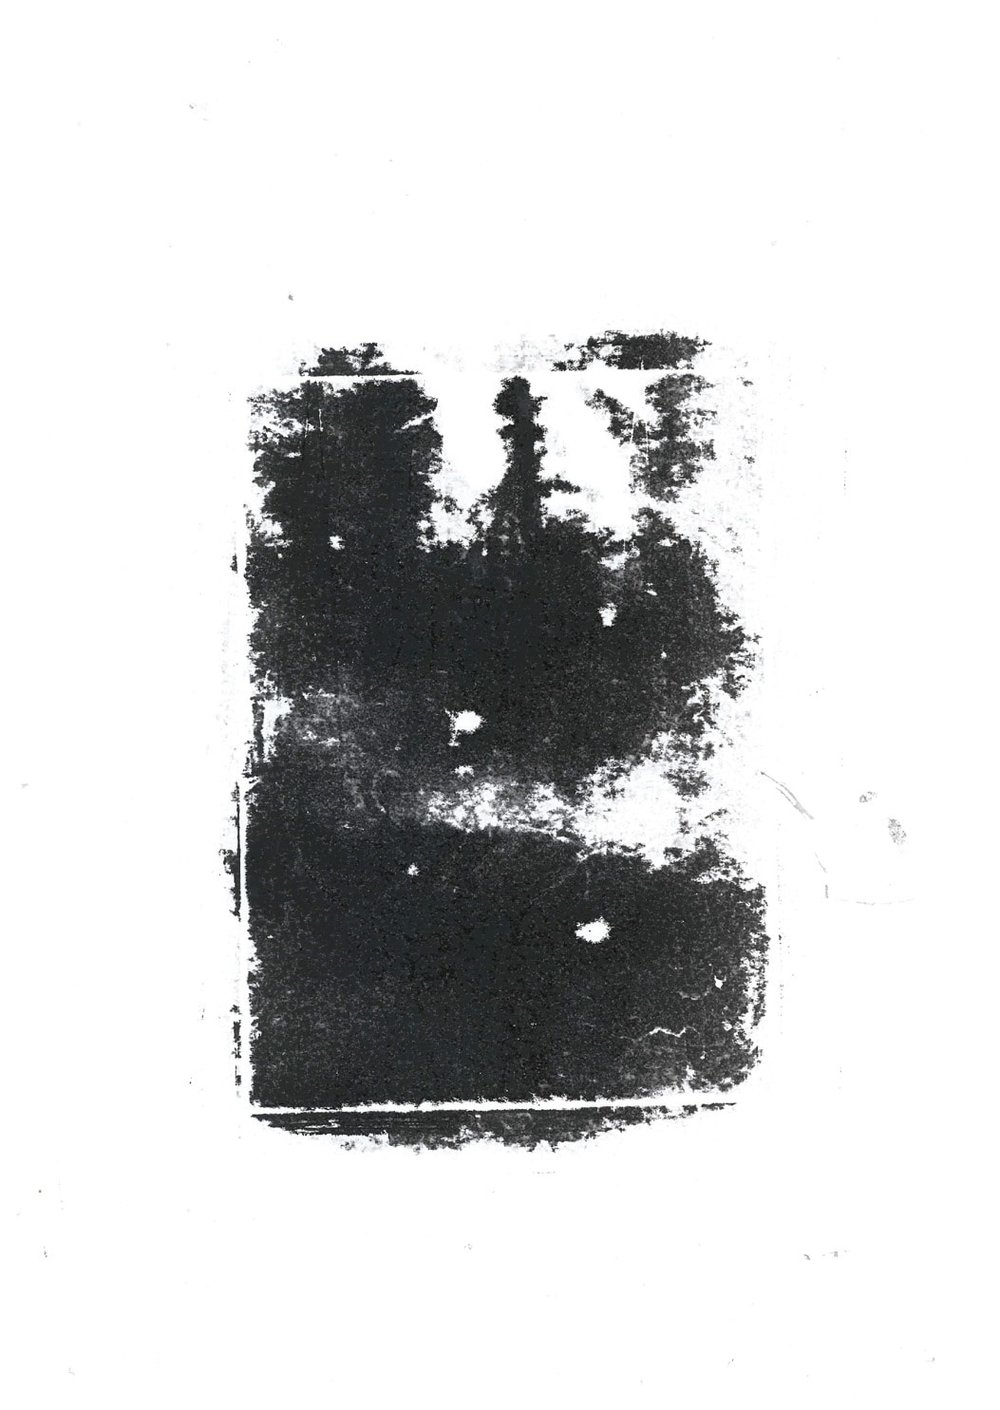 ink-print-memory-of-a-space-7-min.jpg